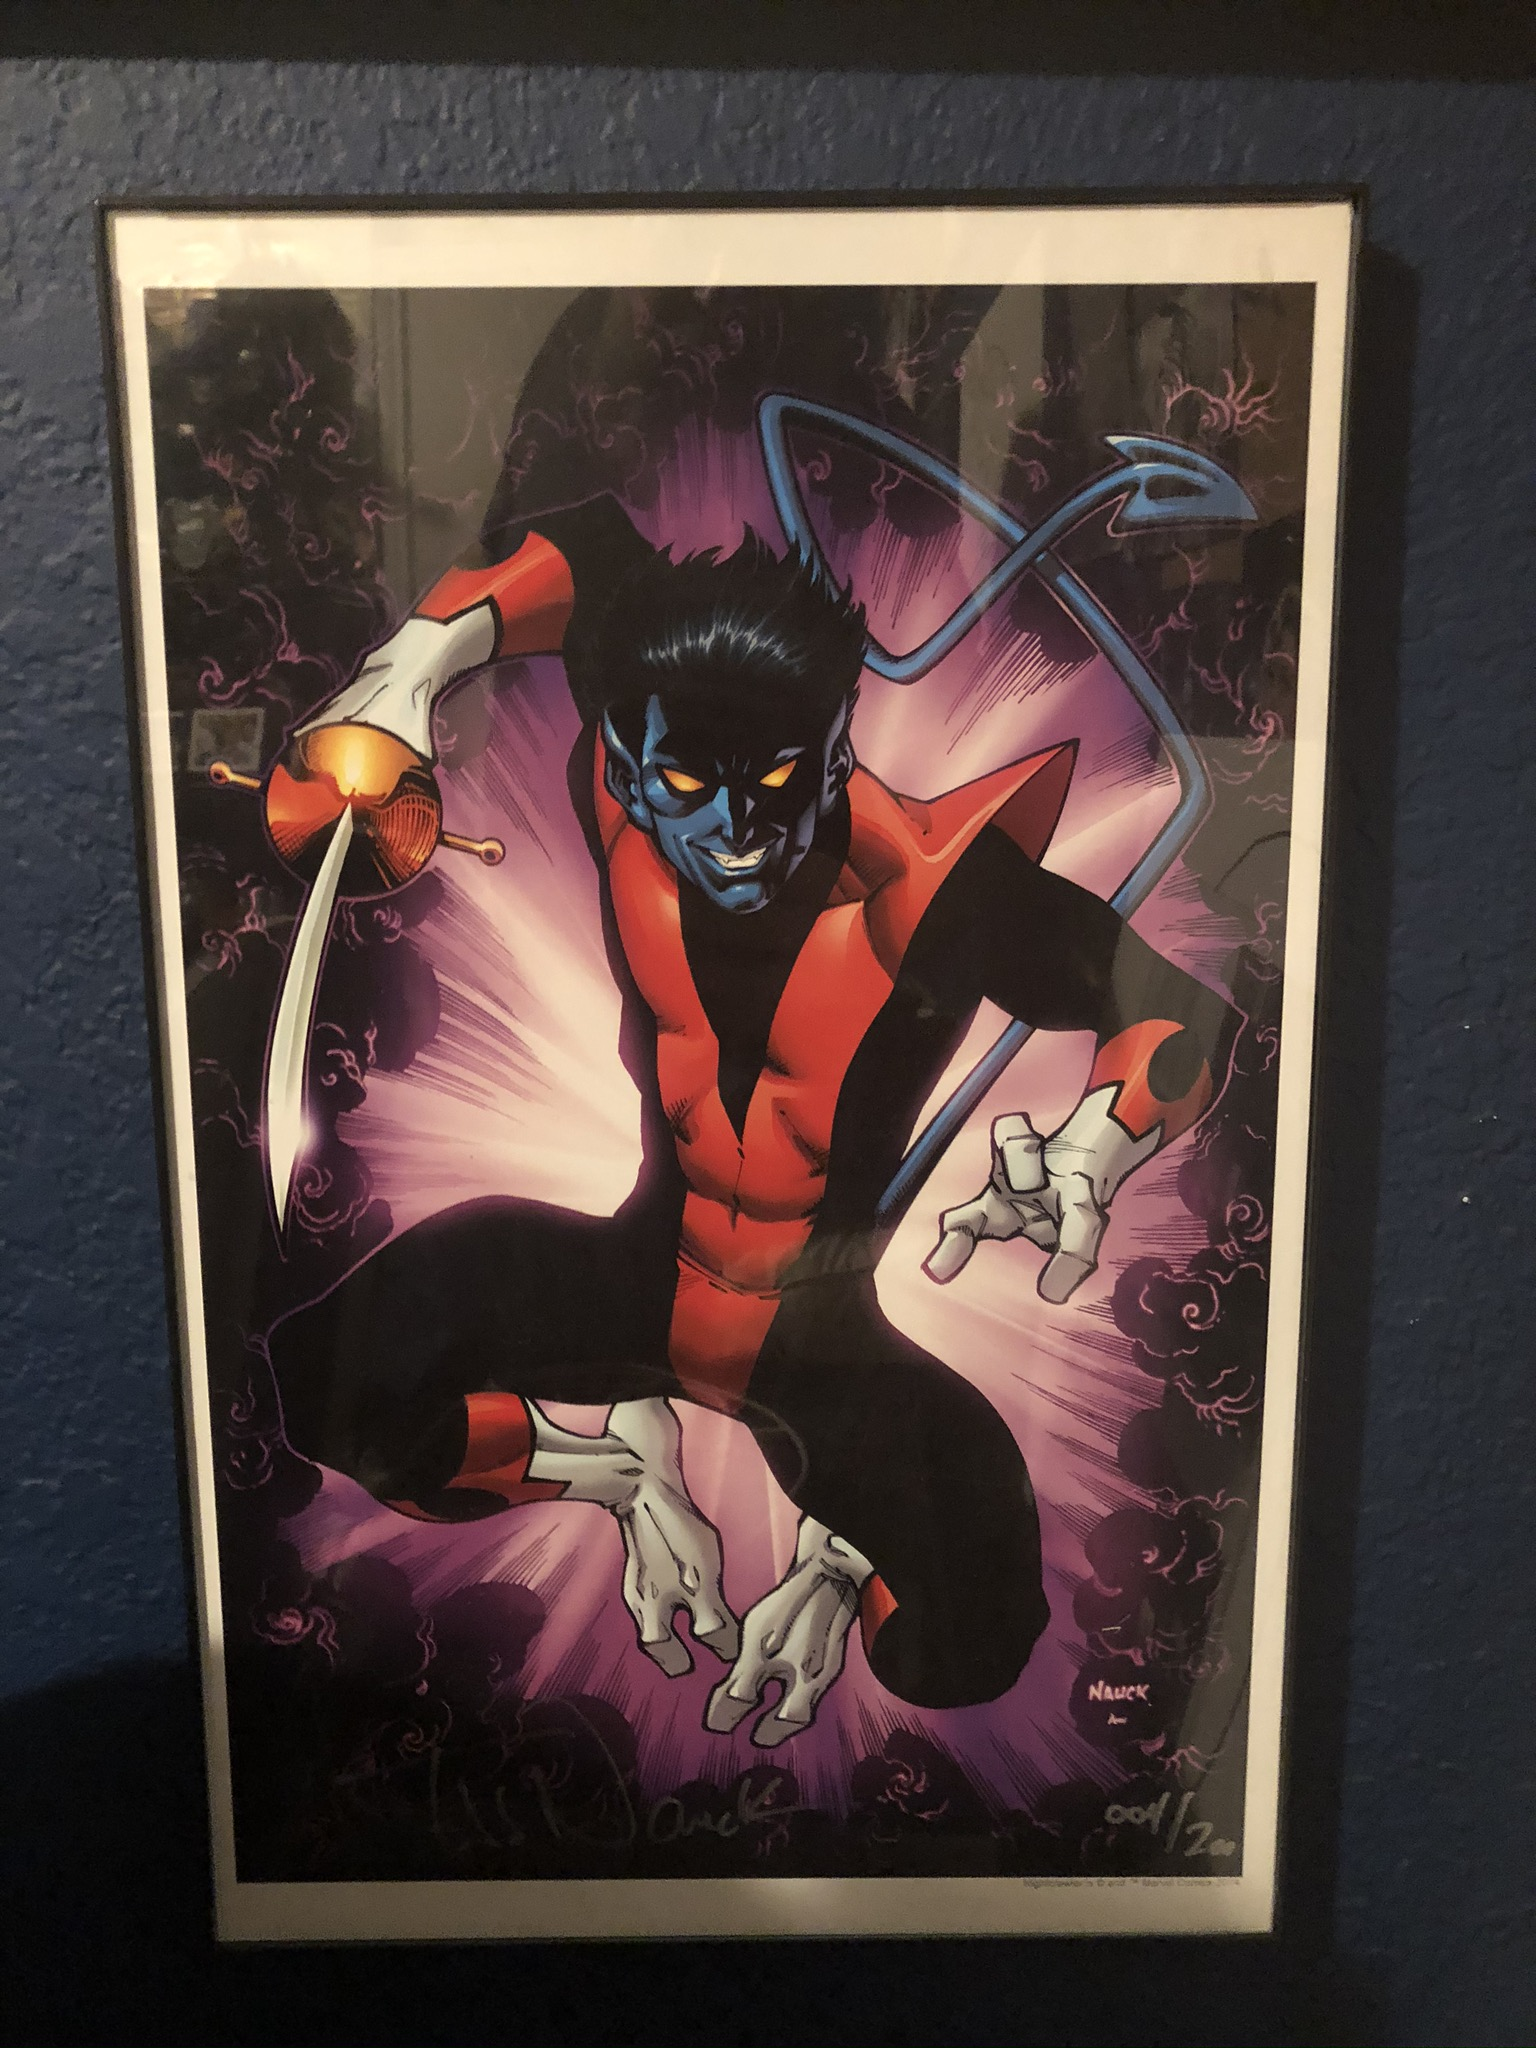 Nightcrawler by Ed McGuinness